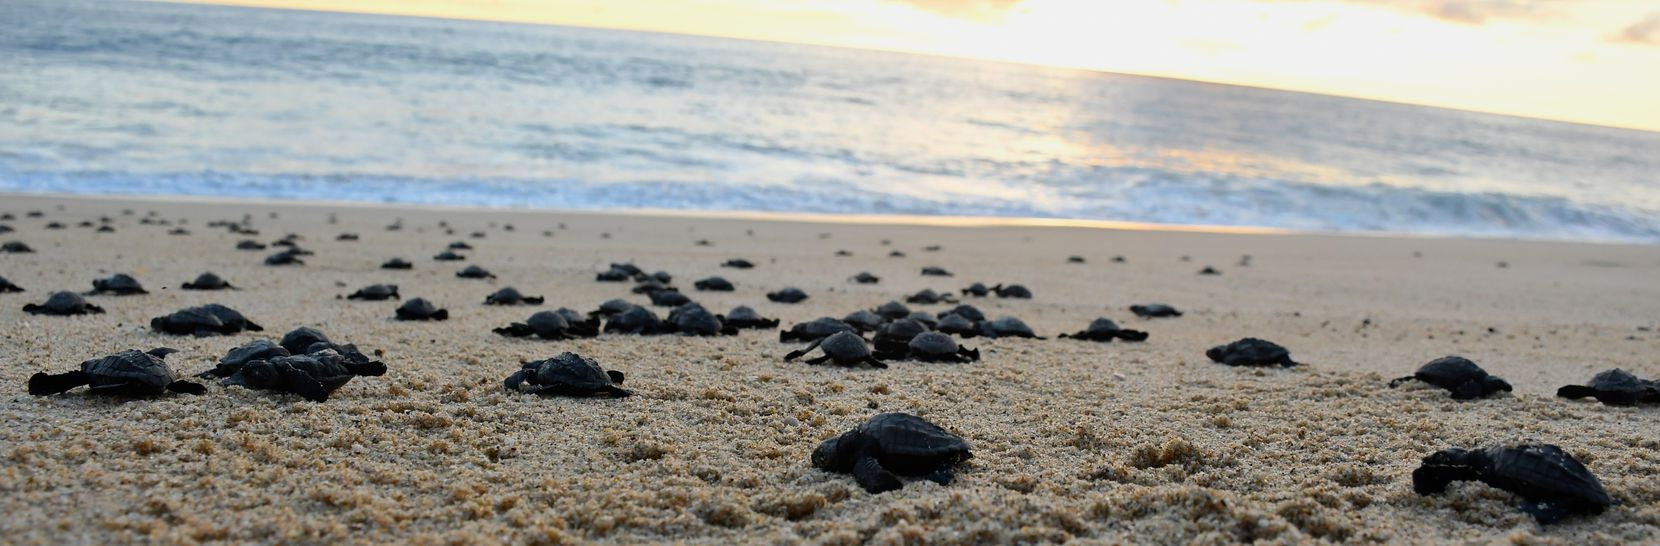 In fall and winter, volunteers release hatchling sea turtles on a beach in Todos Santos, Mexico.